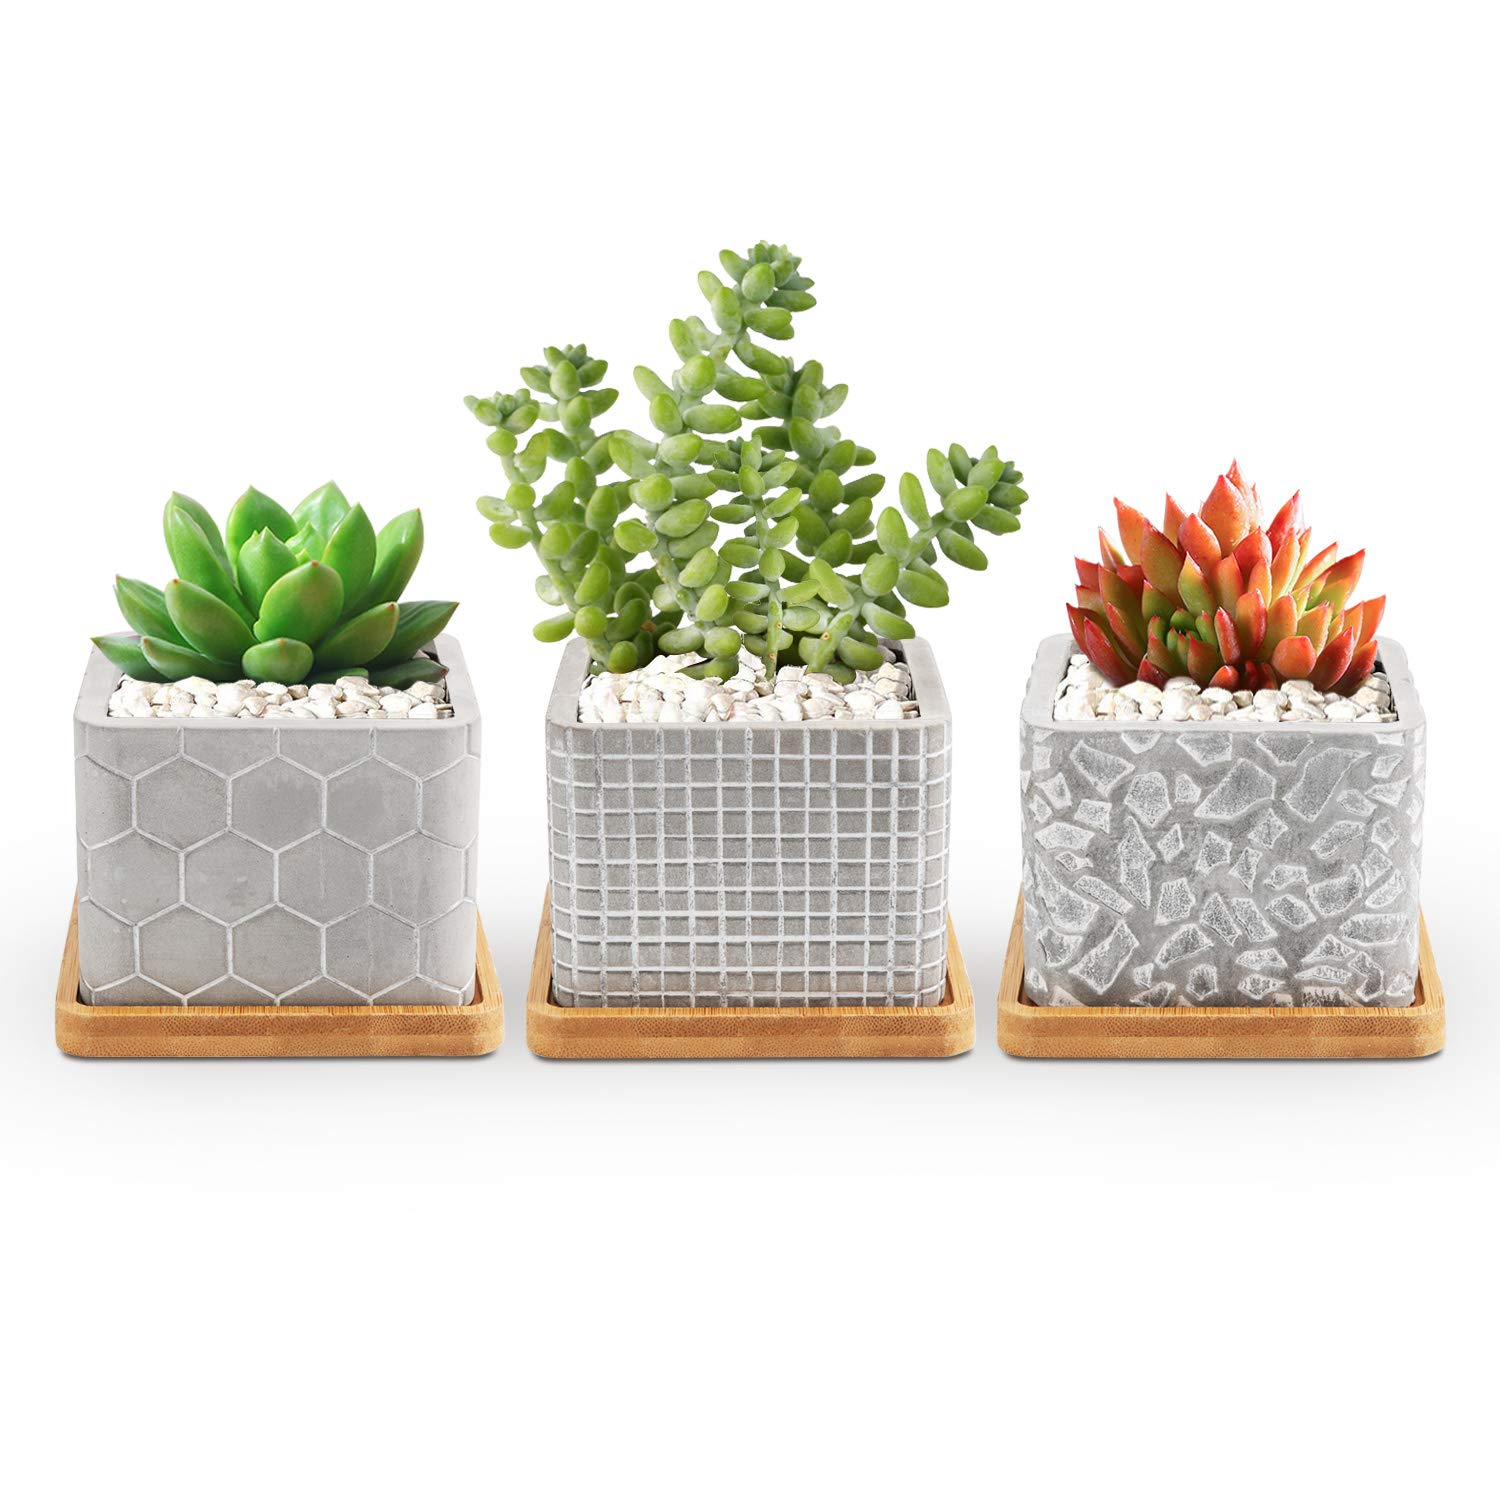 T4U 3.5 Inch Cement Succulent Pot, Concrete Planter Cactus Plant Herb Container for Gardening Home and Office Decoration Birthday Wedding Gift, Set of 3